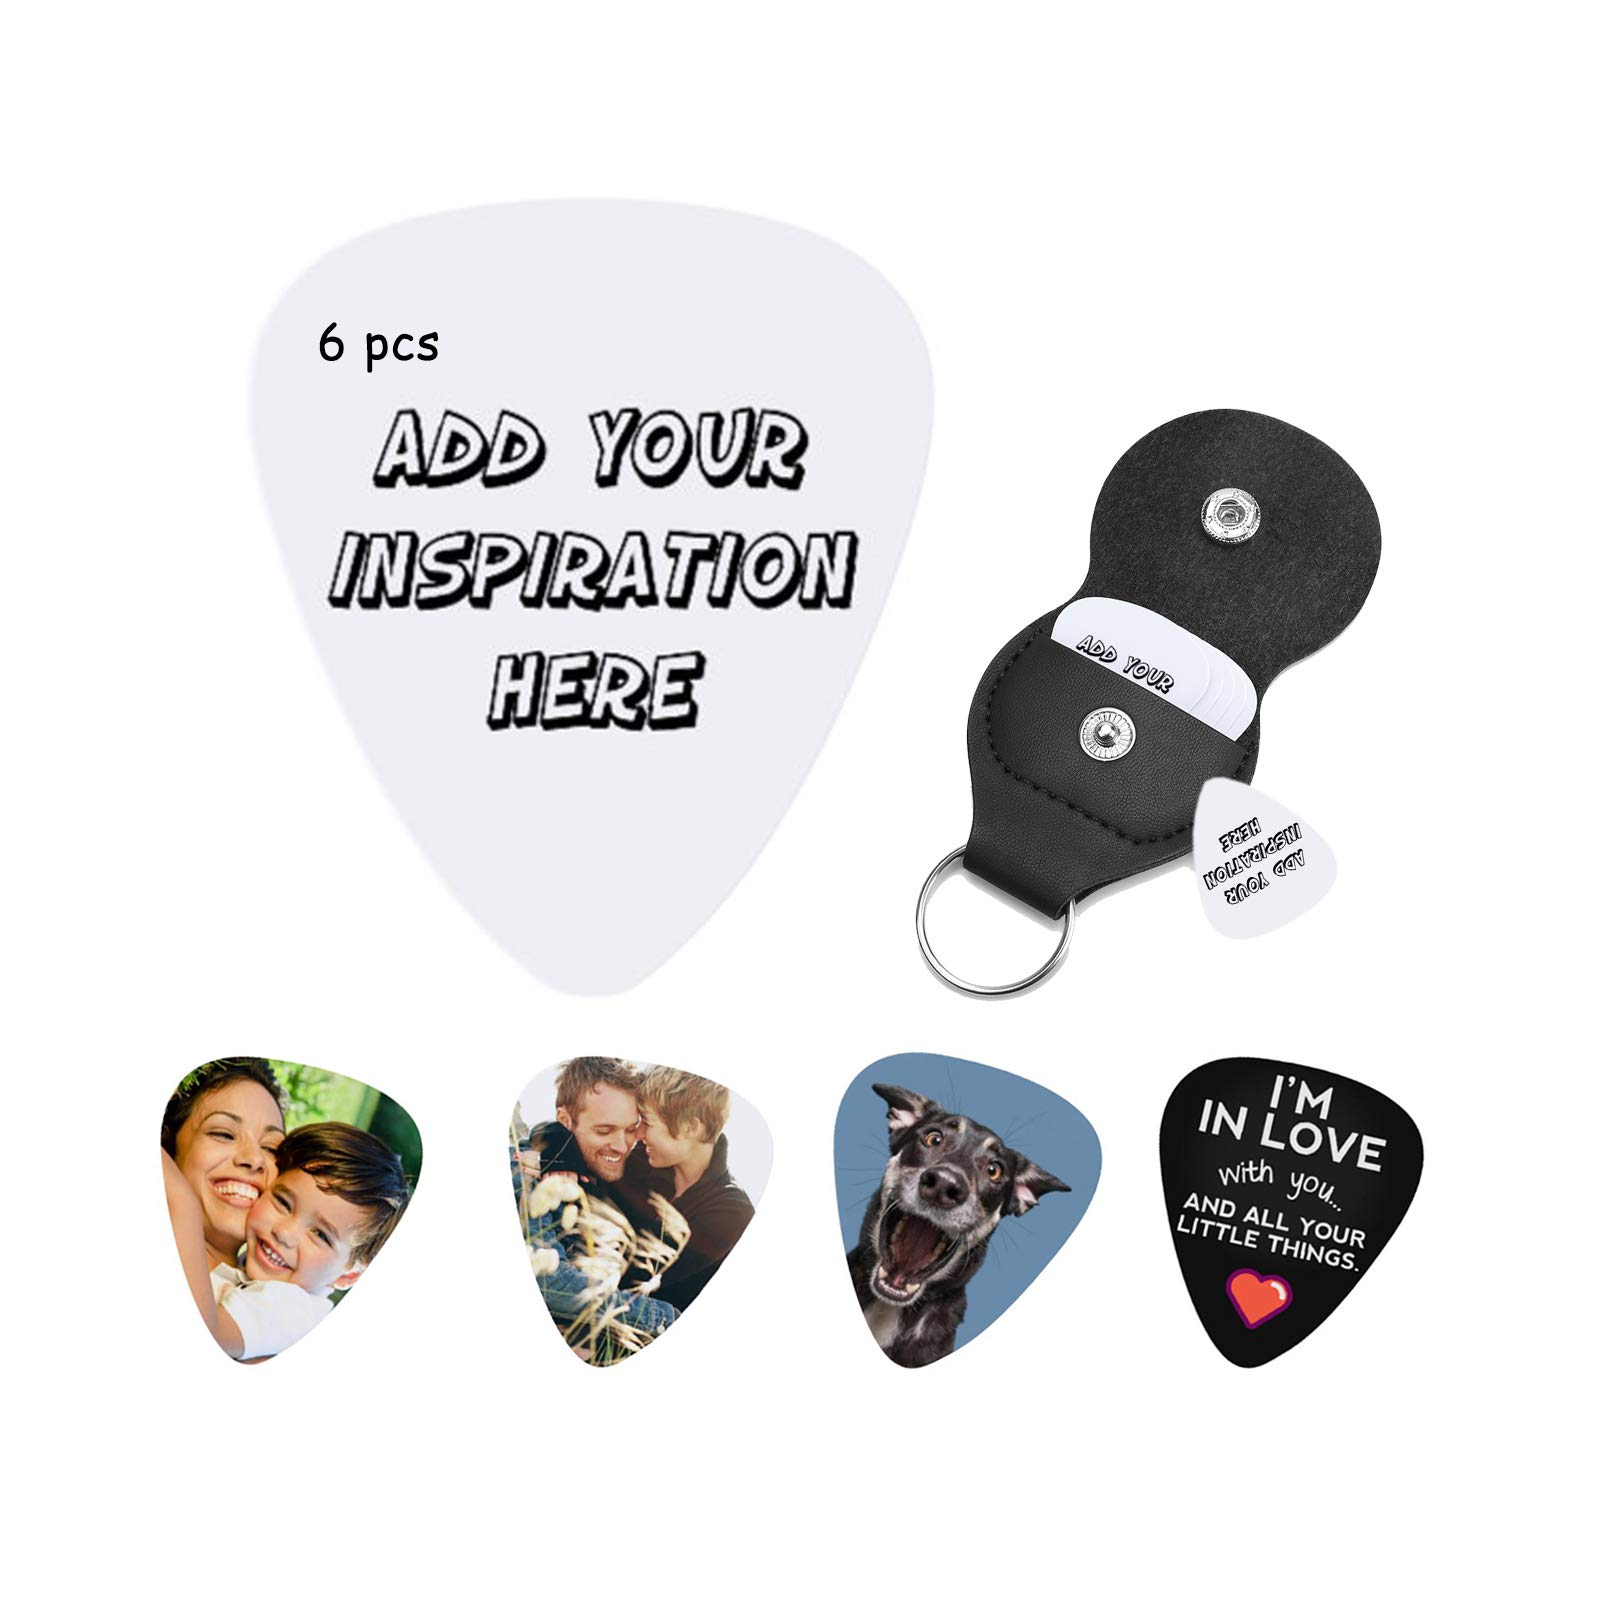 Personalized CustomGuitar Picks - Full-Color Custom Guitar Picks with Your Photo or Design. Durable Material with Detailed Print. Great Gift for Any Musician.6 PCS-Thickness(0.46mm)